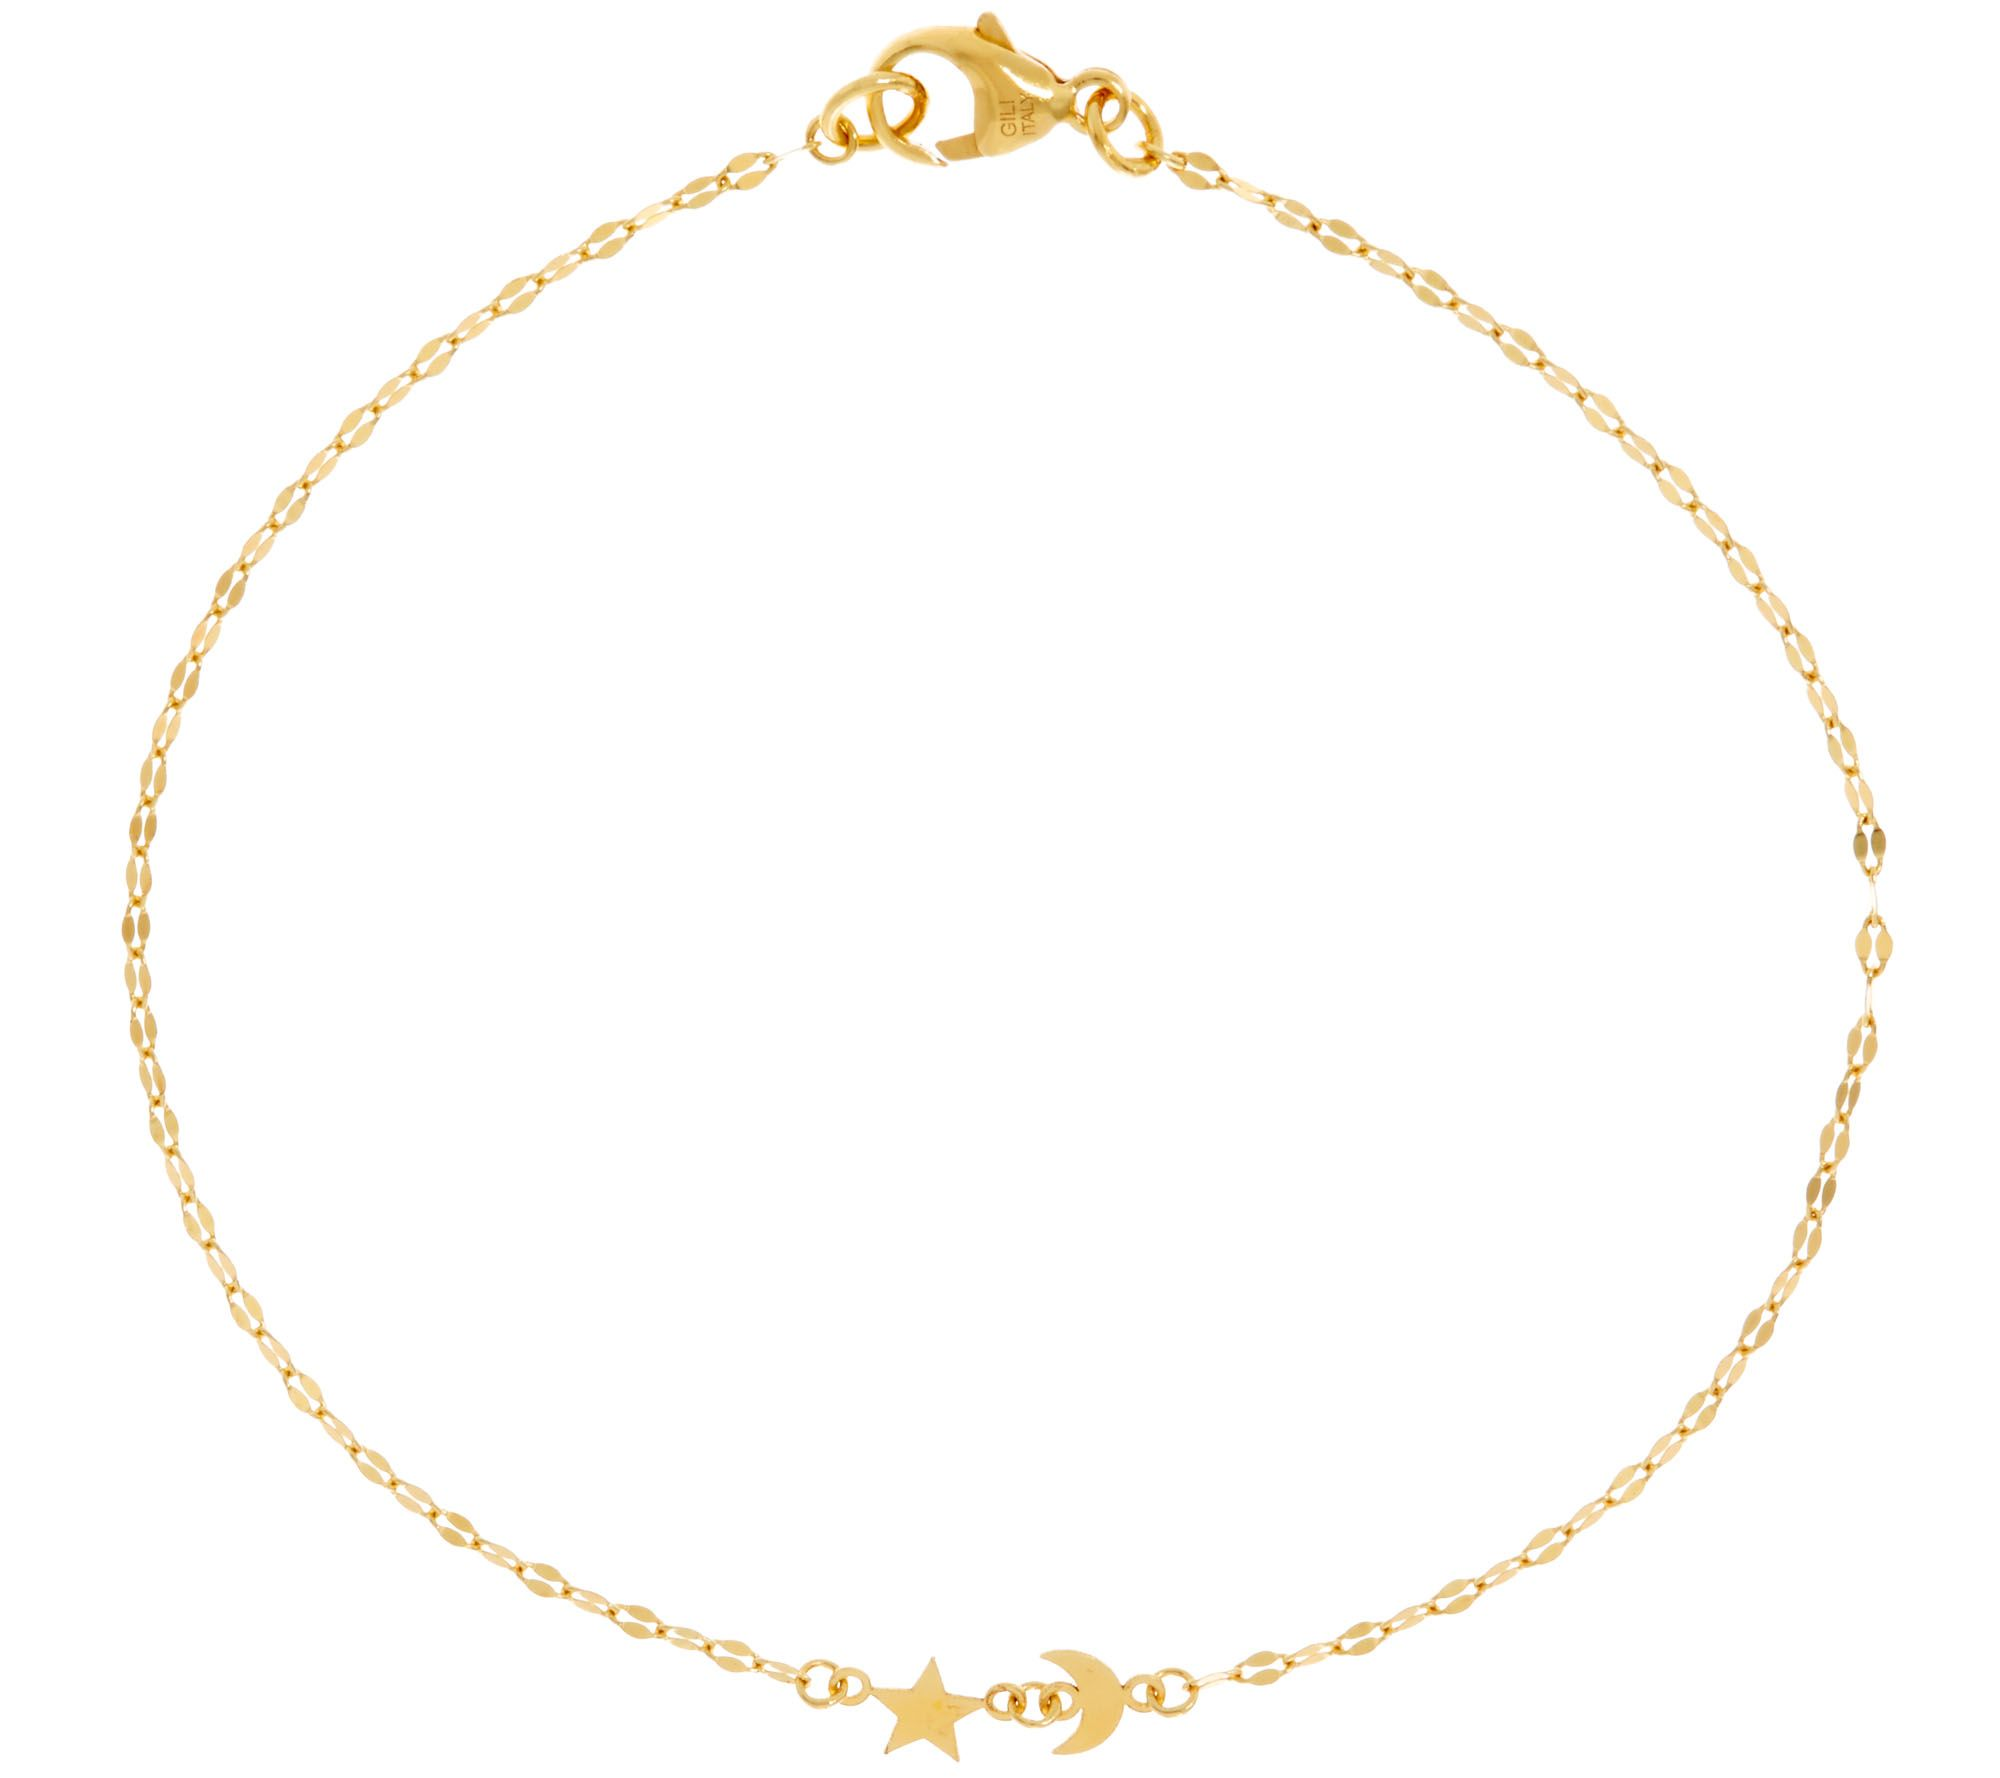 jewelry stylish anklet inches free yellow today shipping fremada solid flower gold product watches overstock station